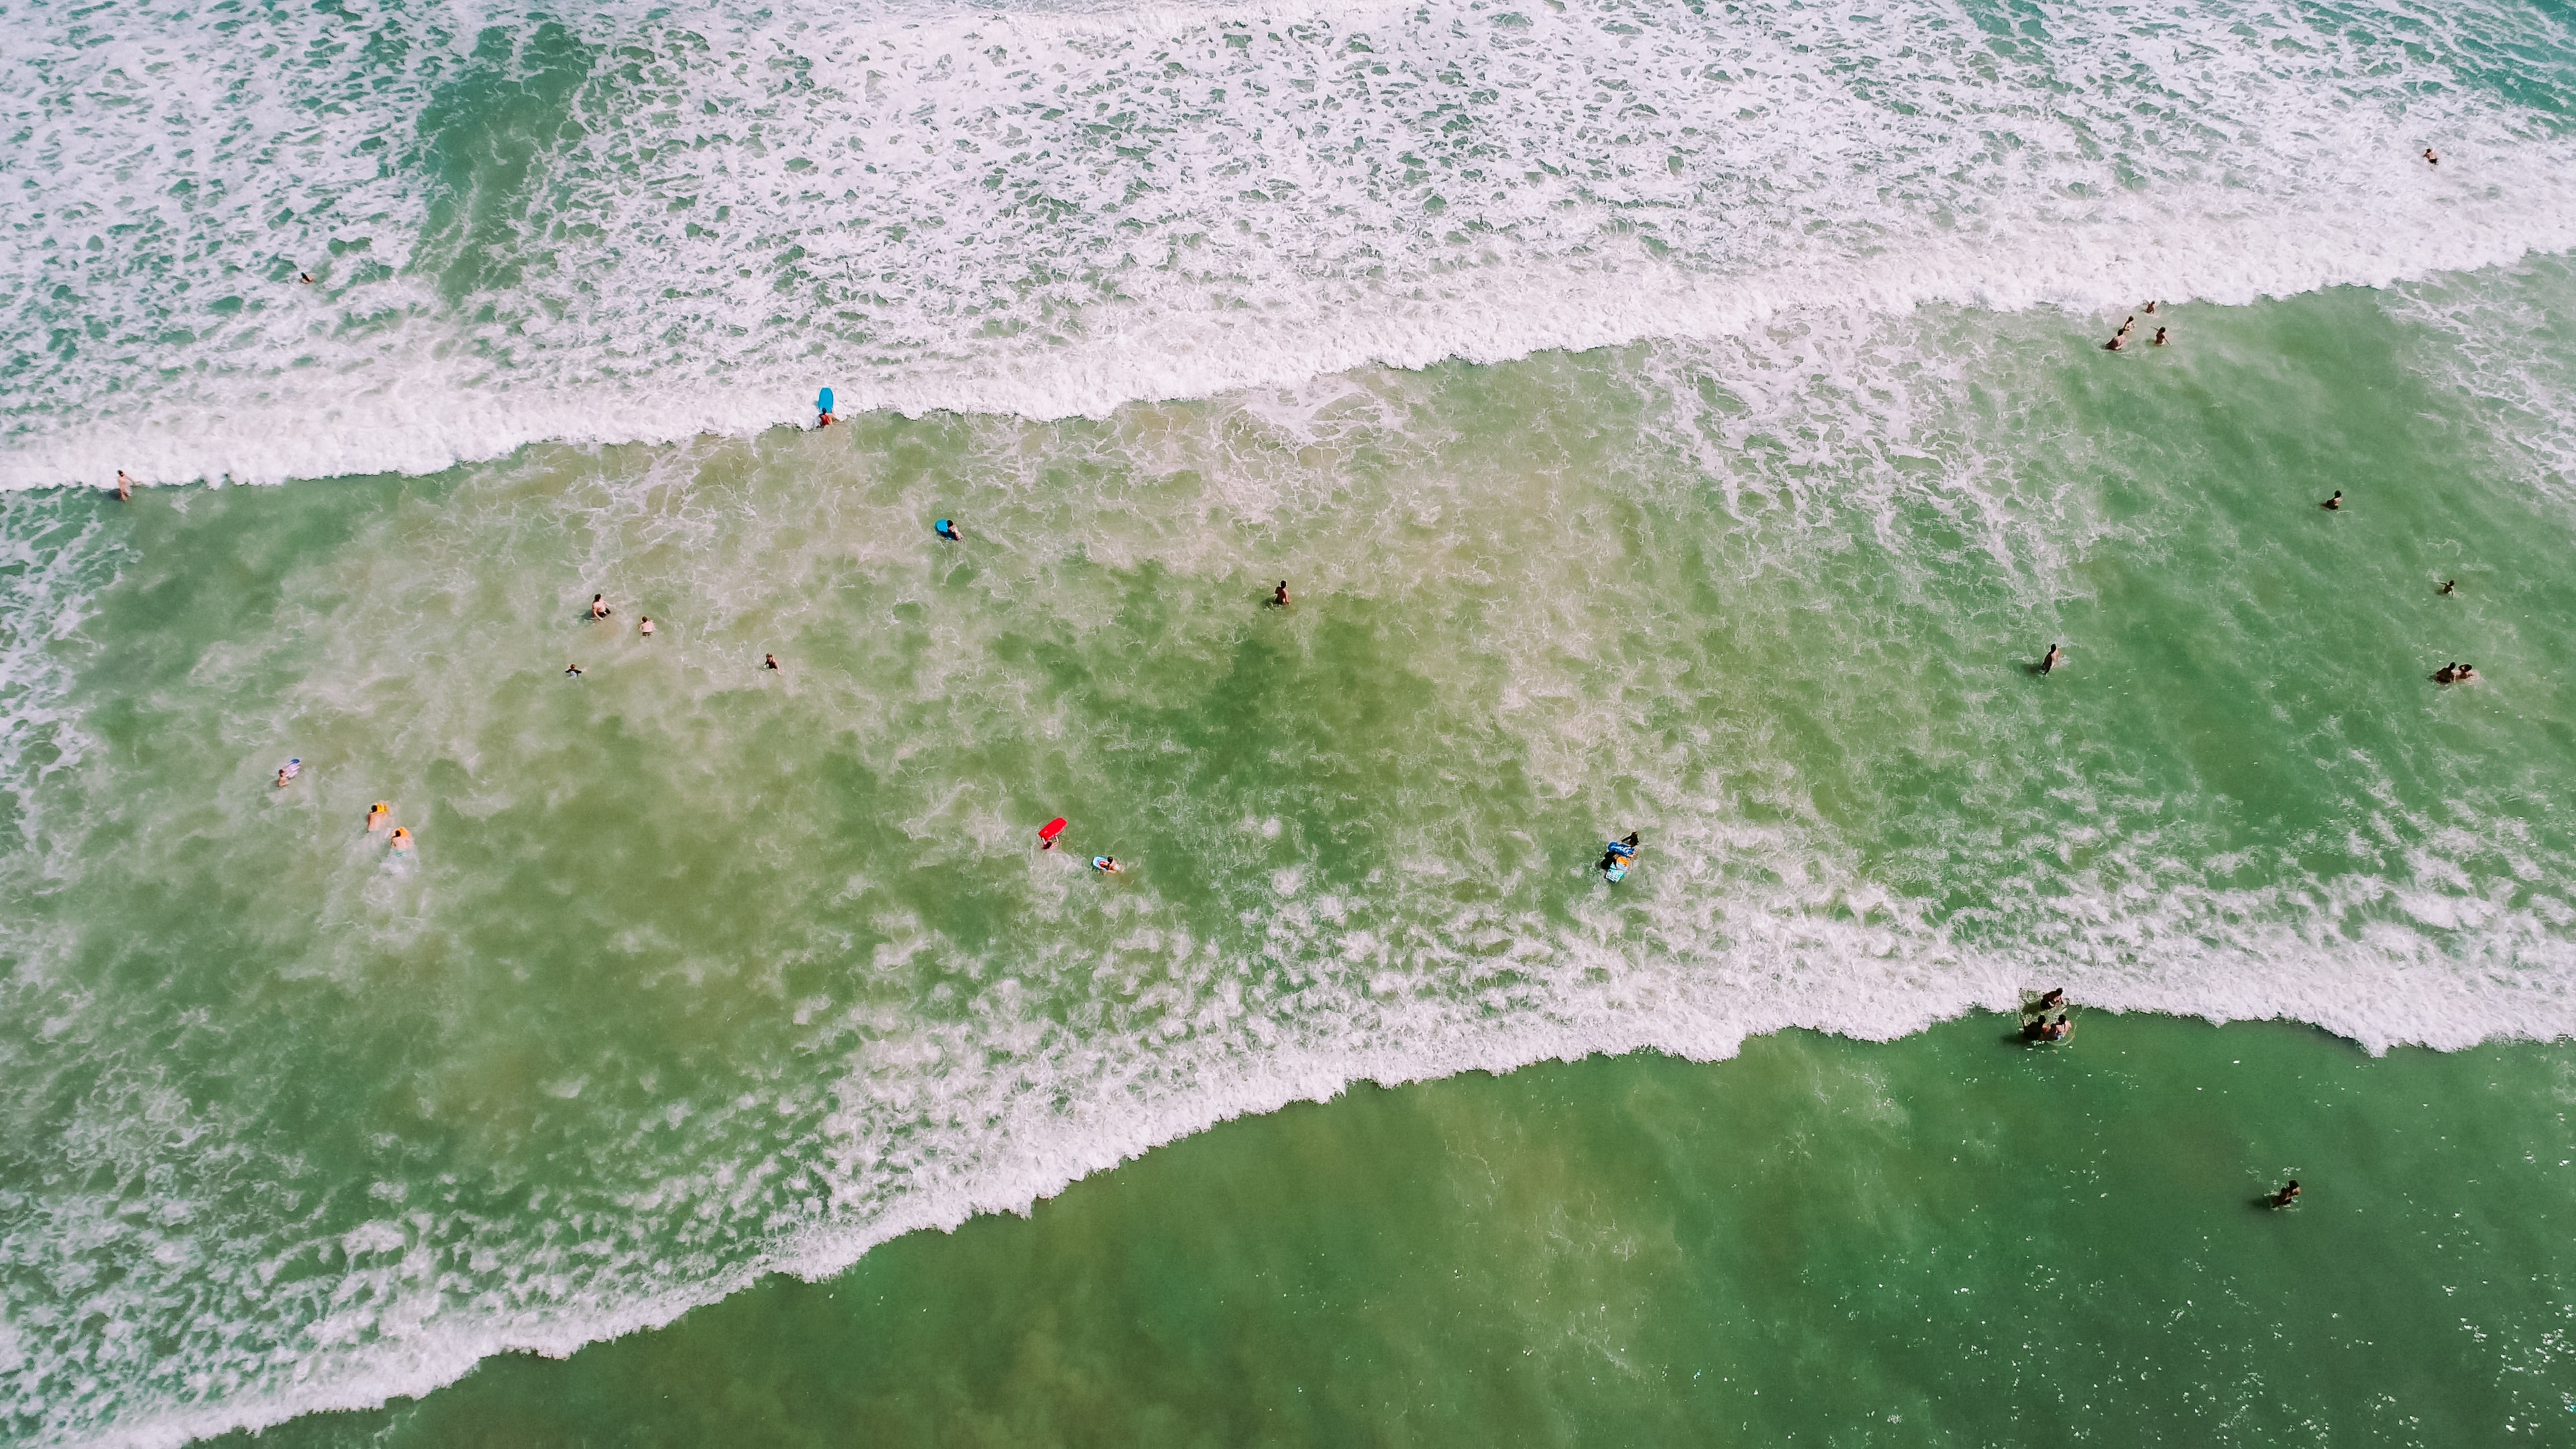 aerial photo of people on seashore with waves and bubbles at daytime